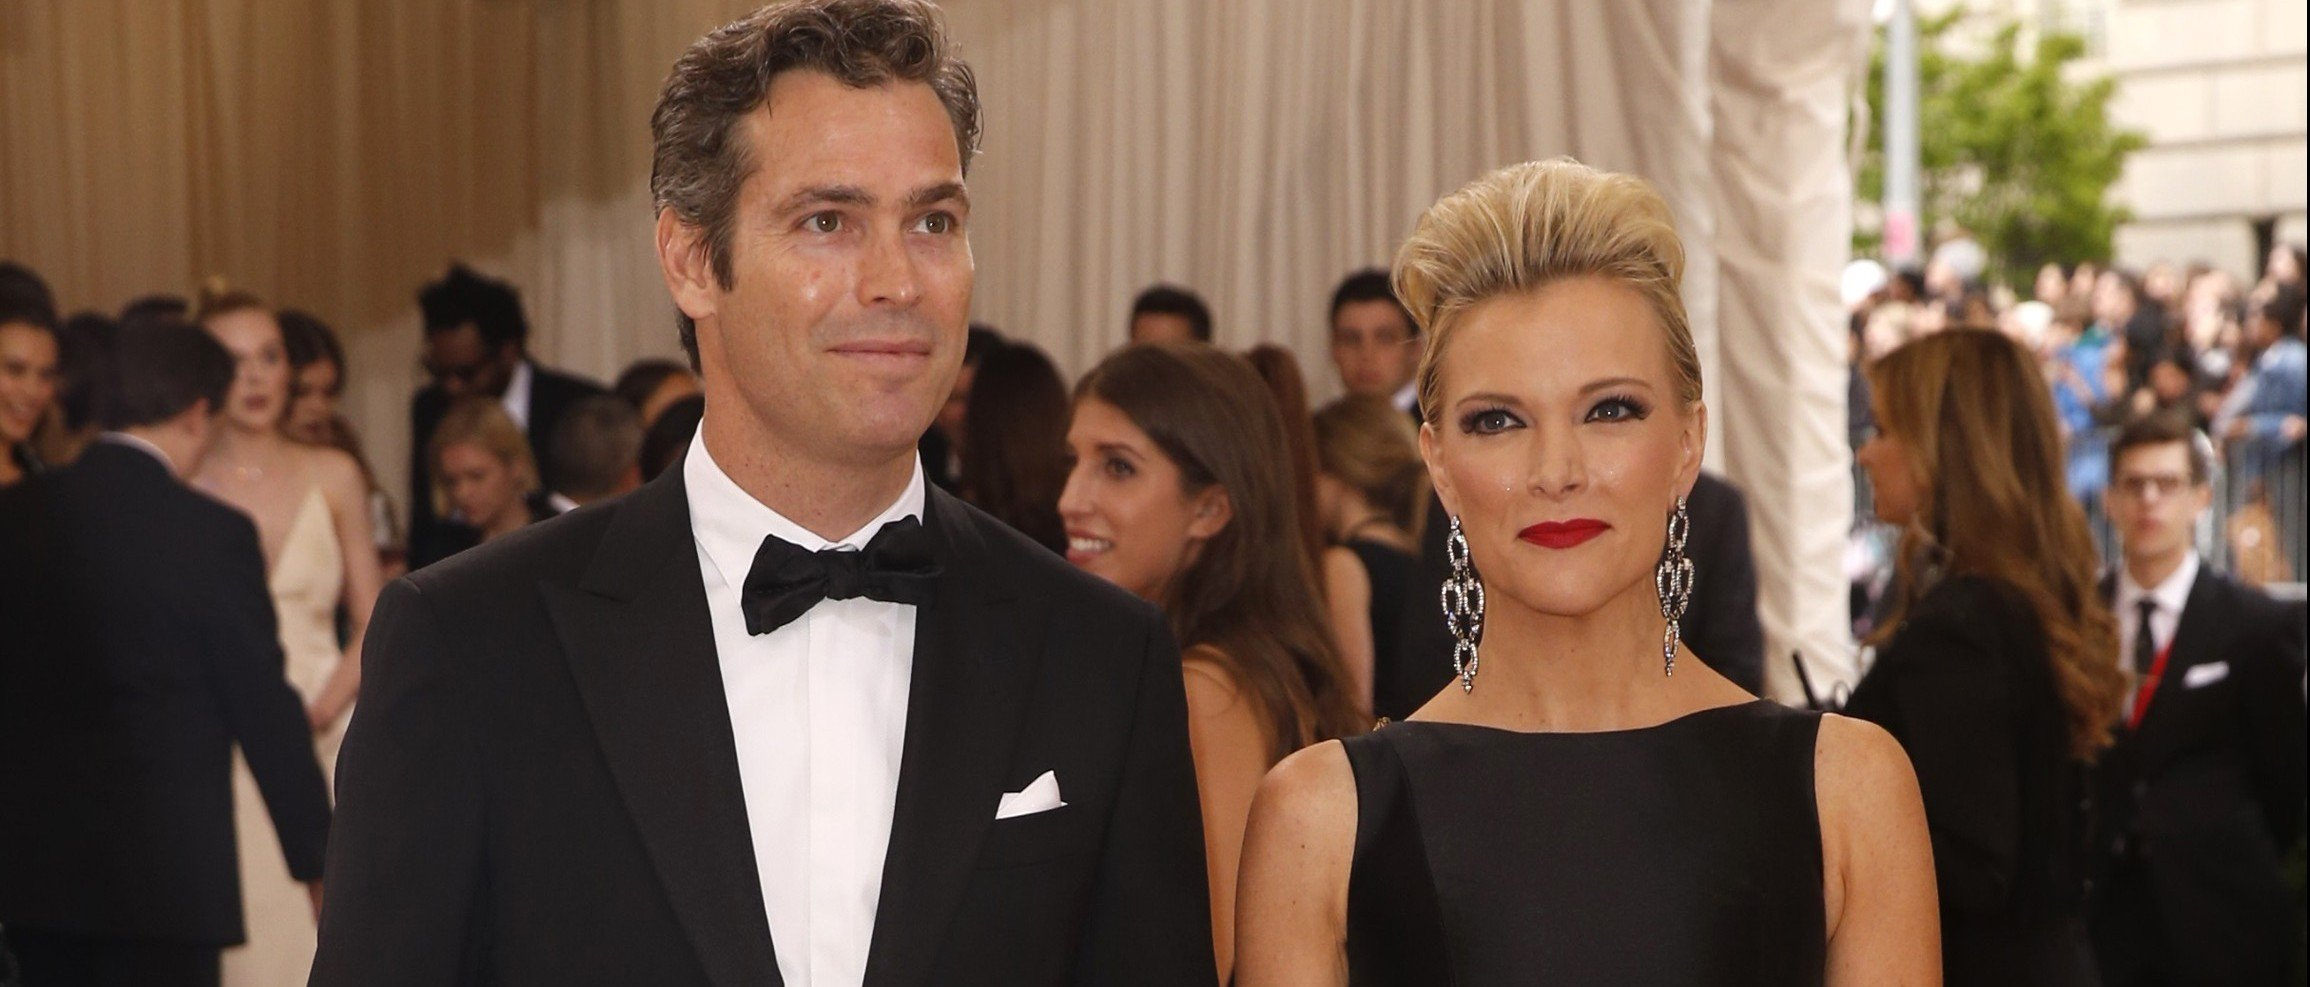 Megyn Kelly's Husband Recalls First Date Surrounded By ...